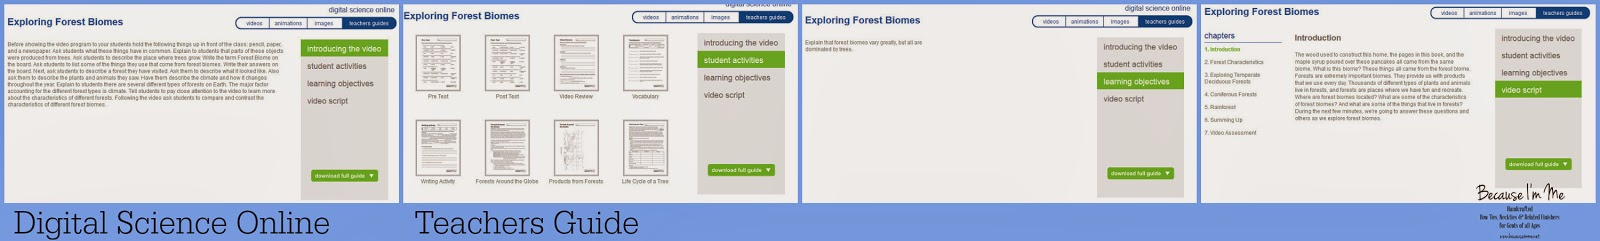 Digital Science Online Review for elementary through high school